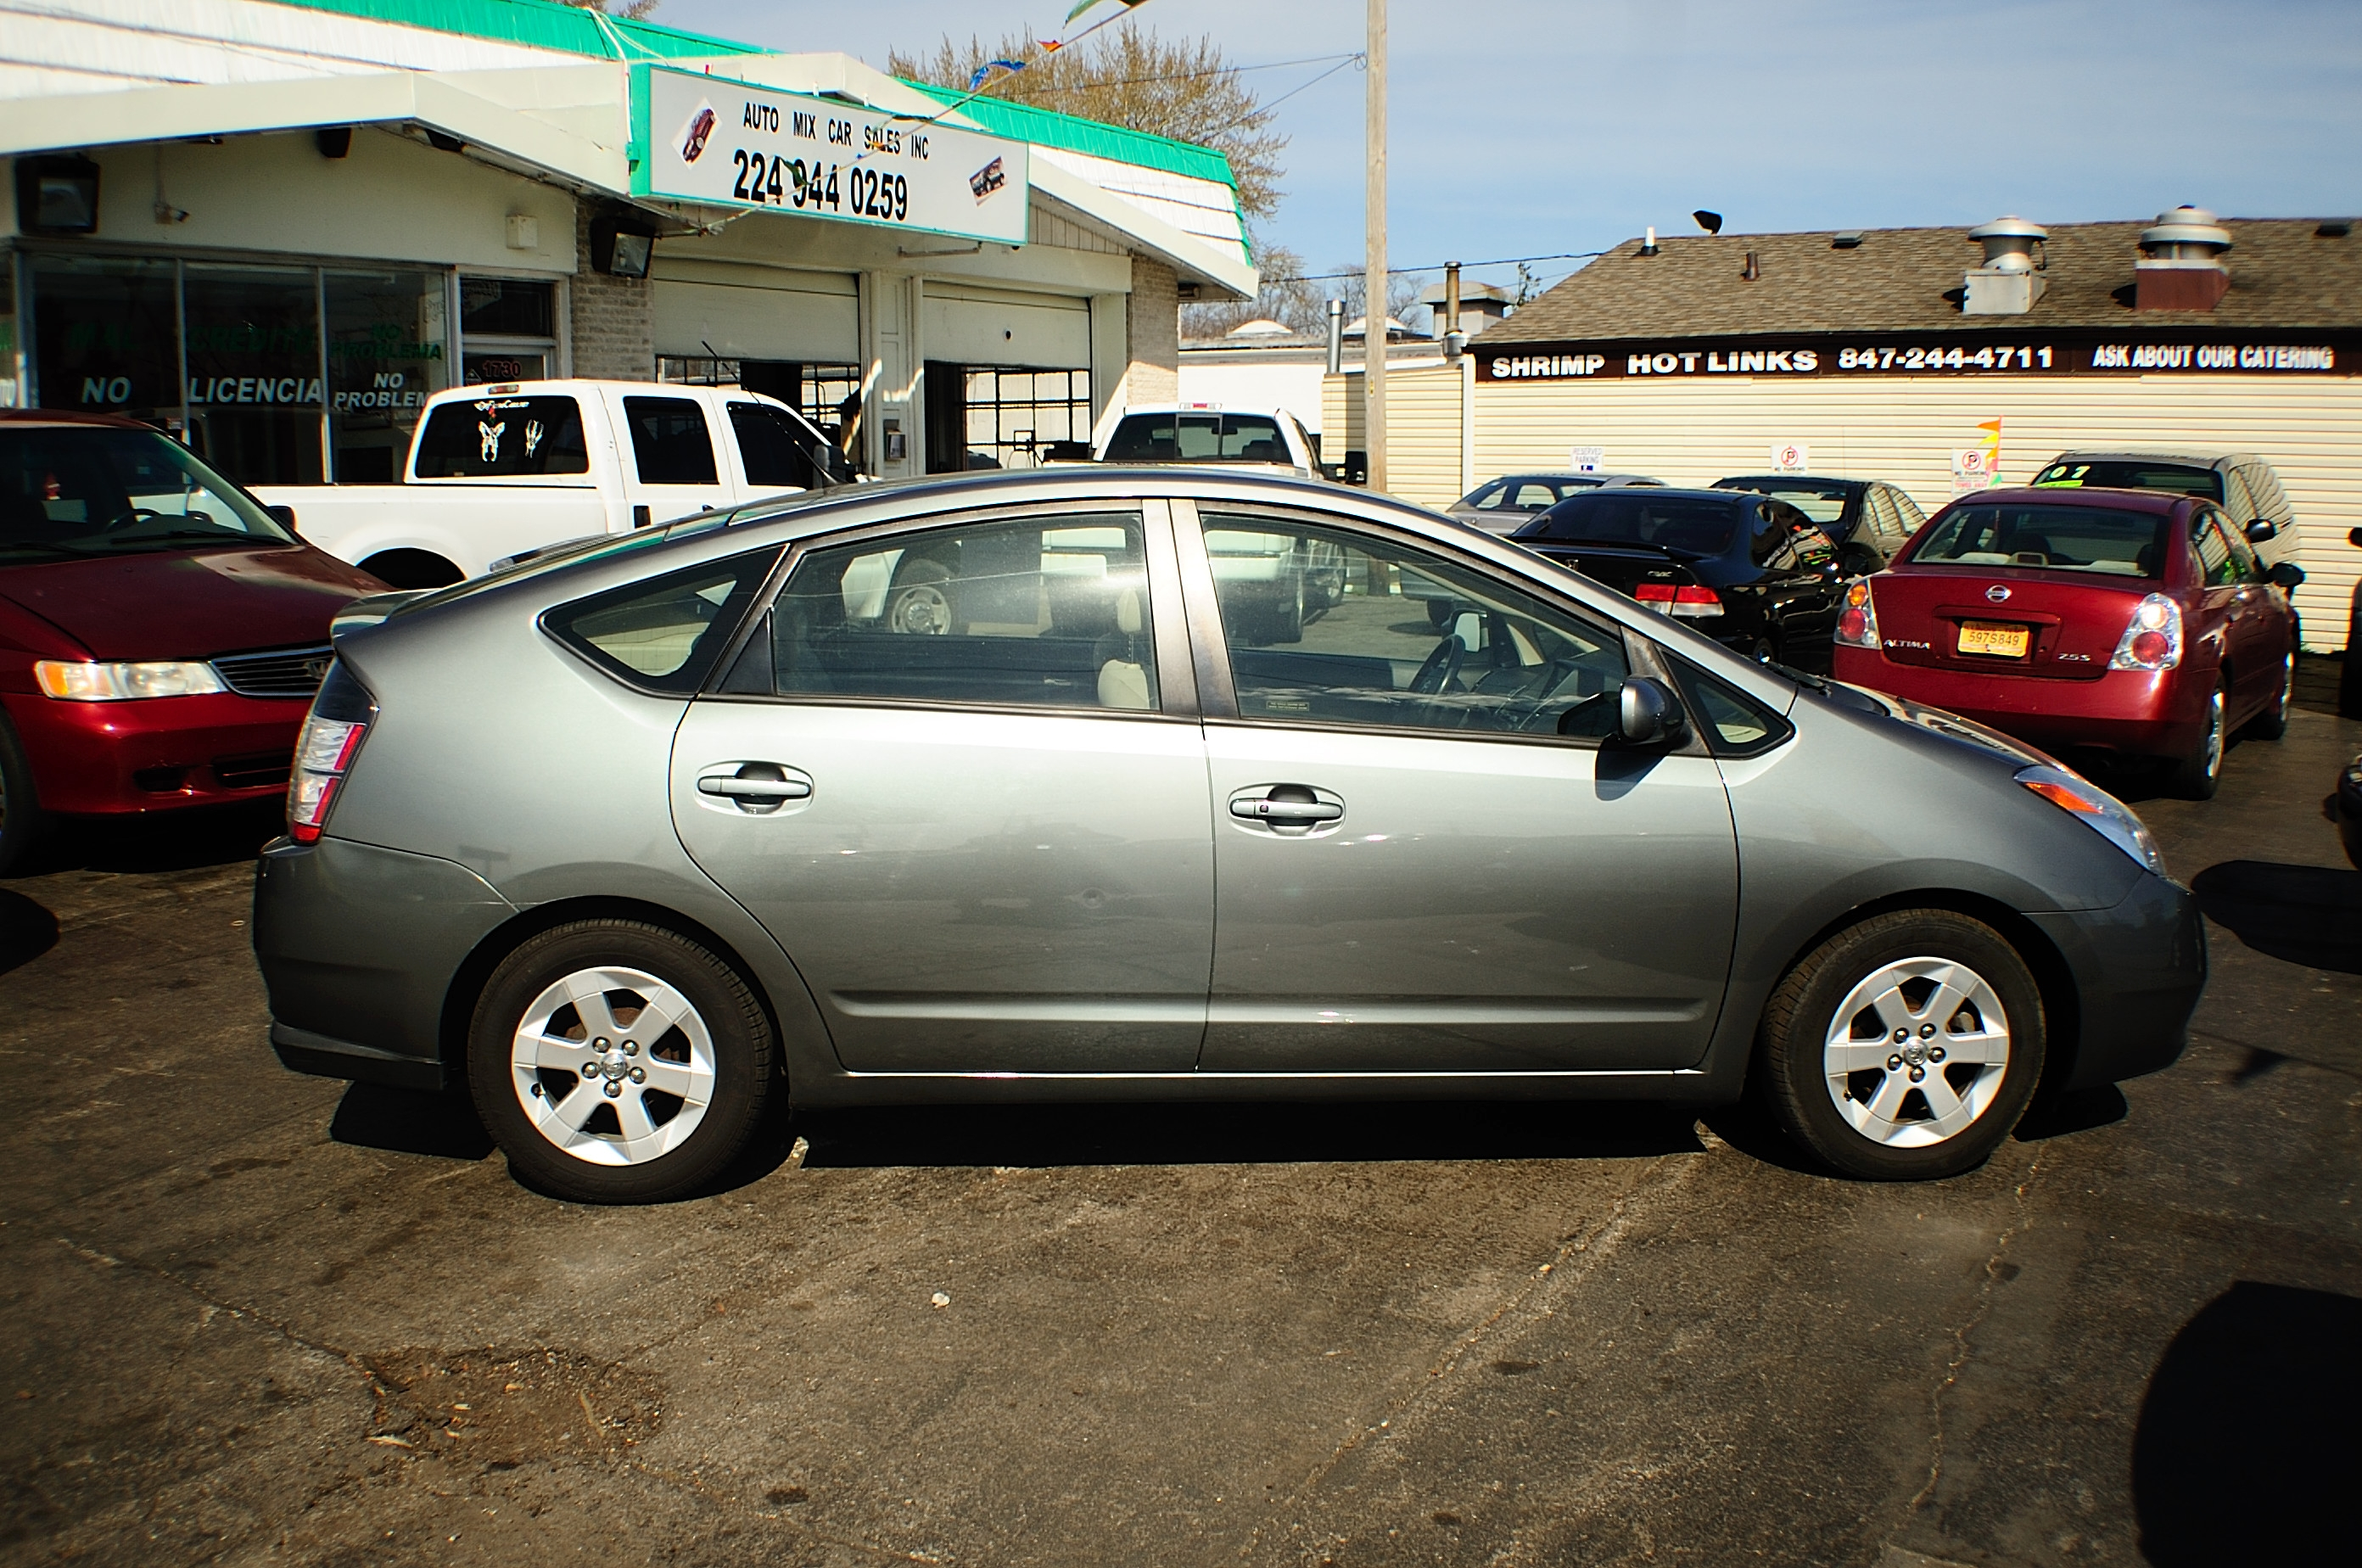 2005 Toyota Prius Hybrid 4Dr Gray Sedan used car sale Bannockburn Barrington Beach Park